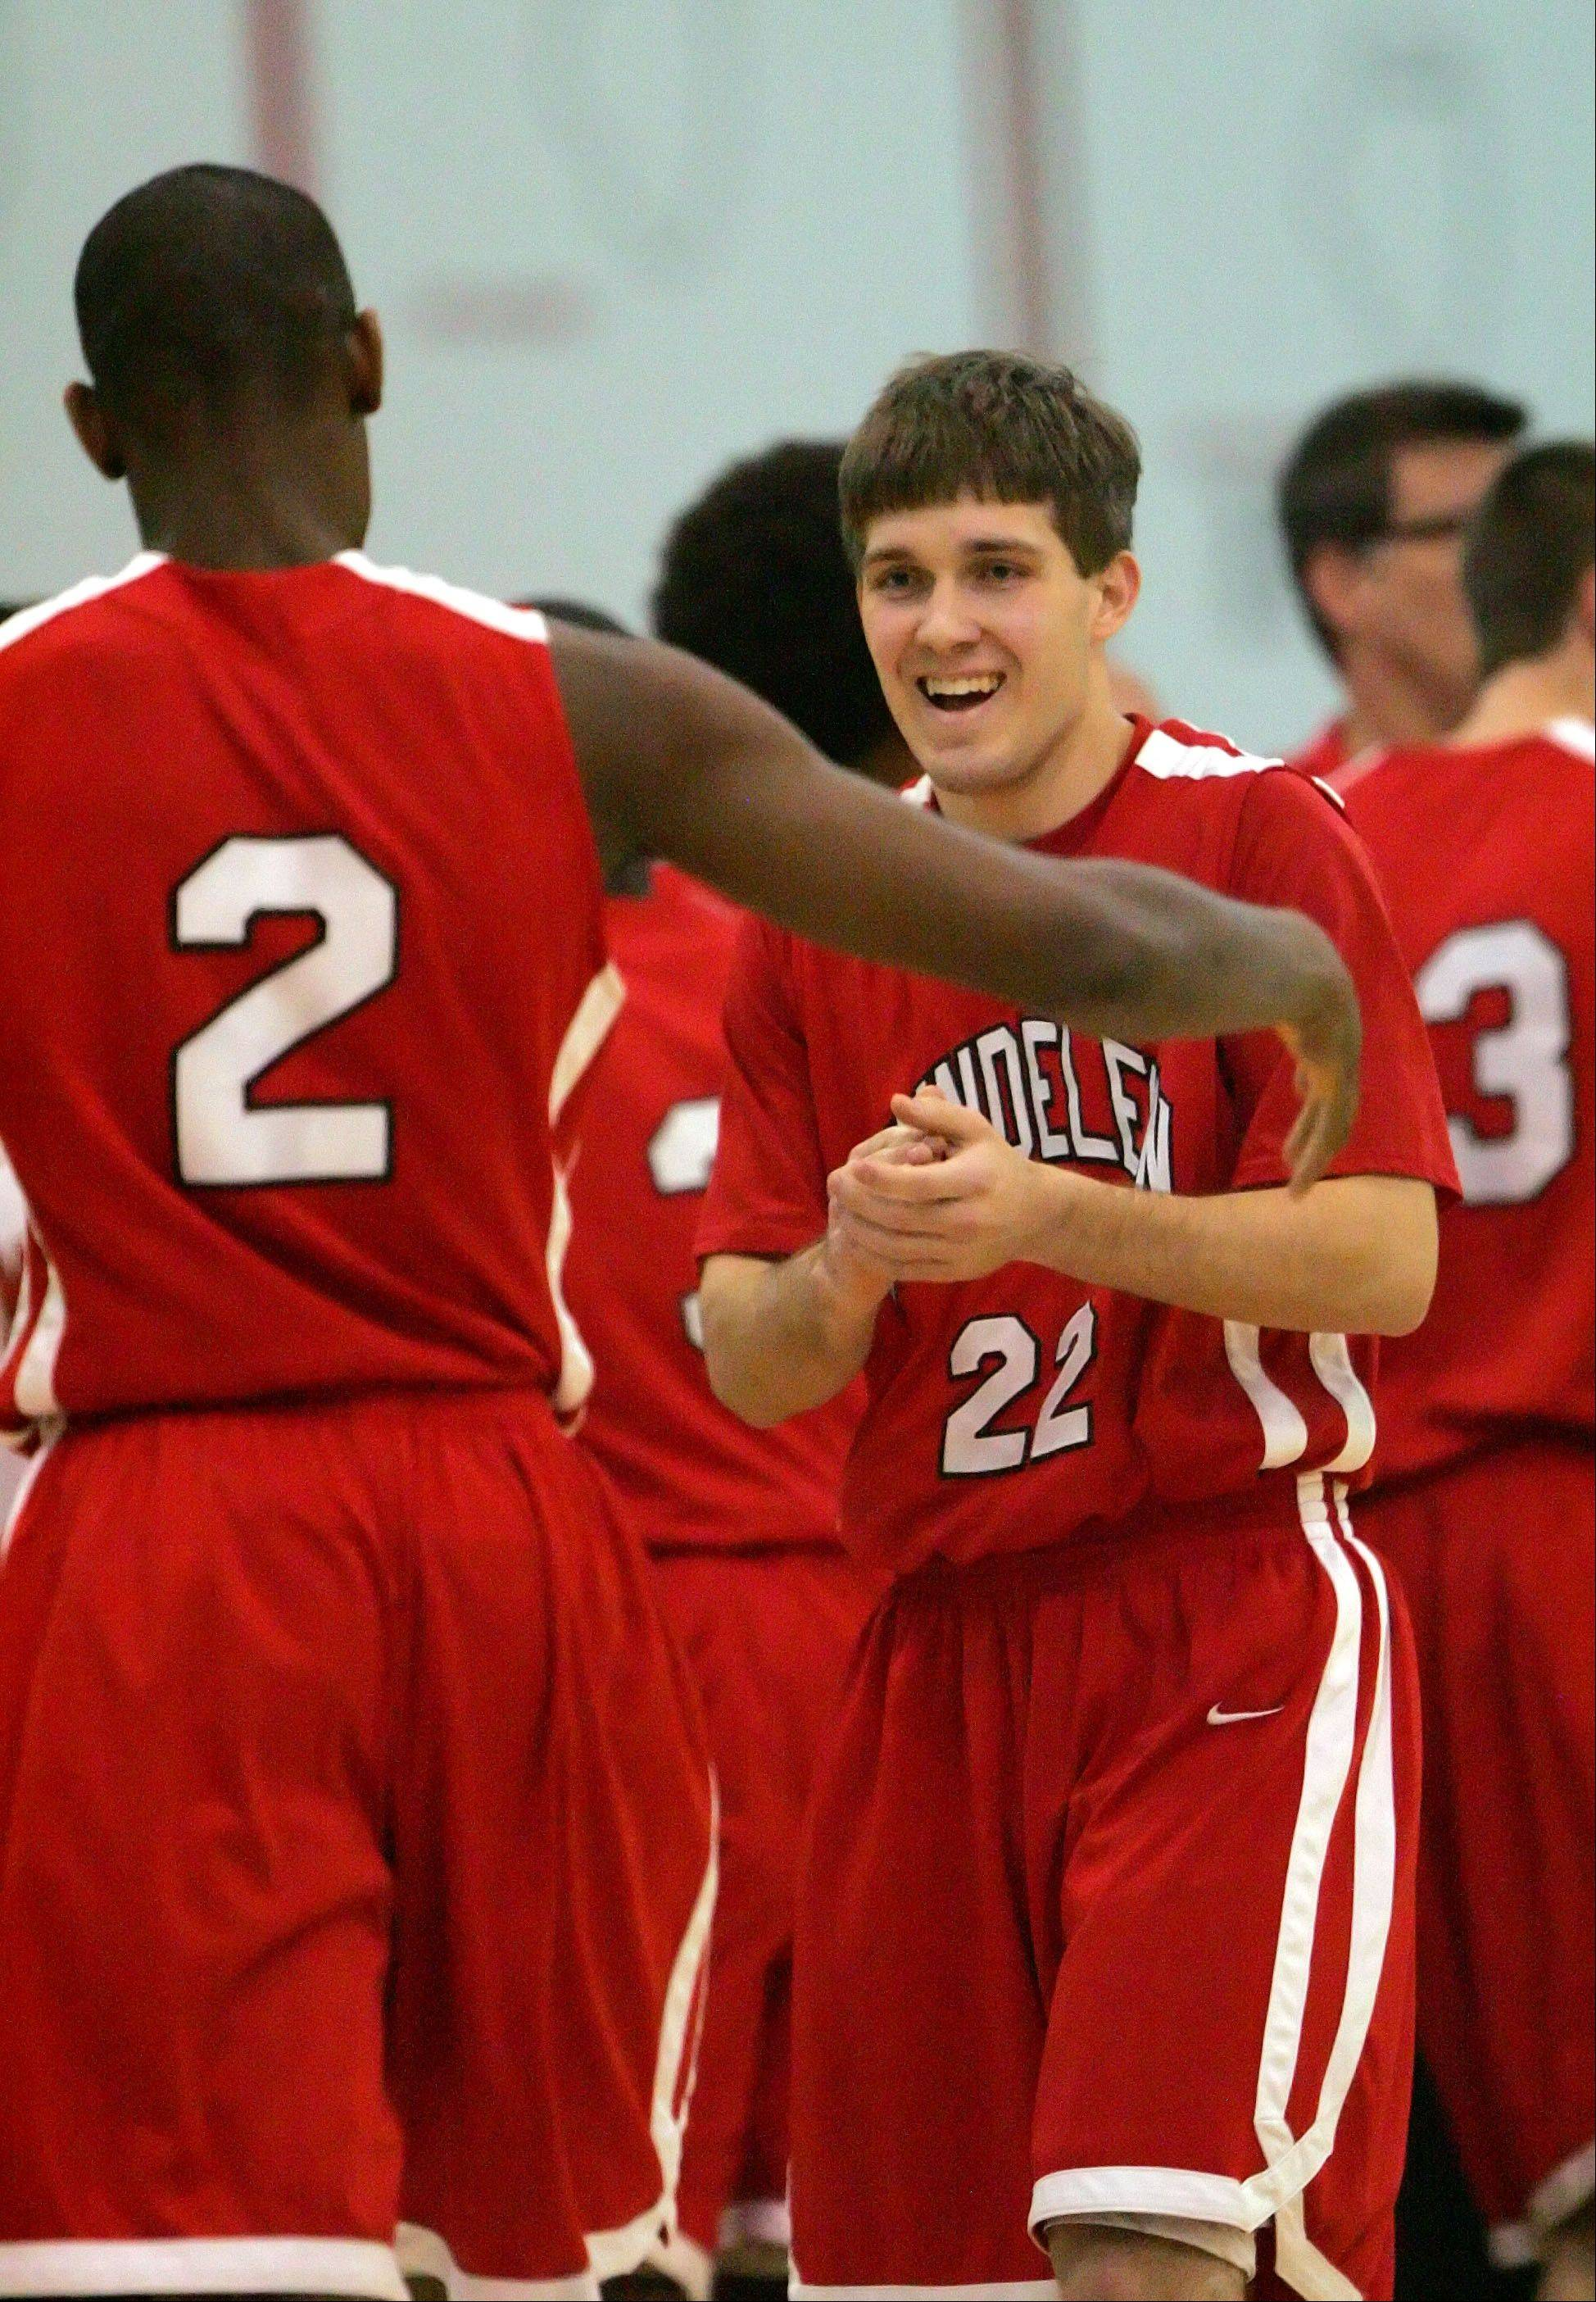 Mundelein's Chino Ebube, left, celebrates with Robert Knar.